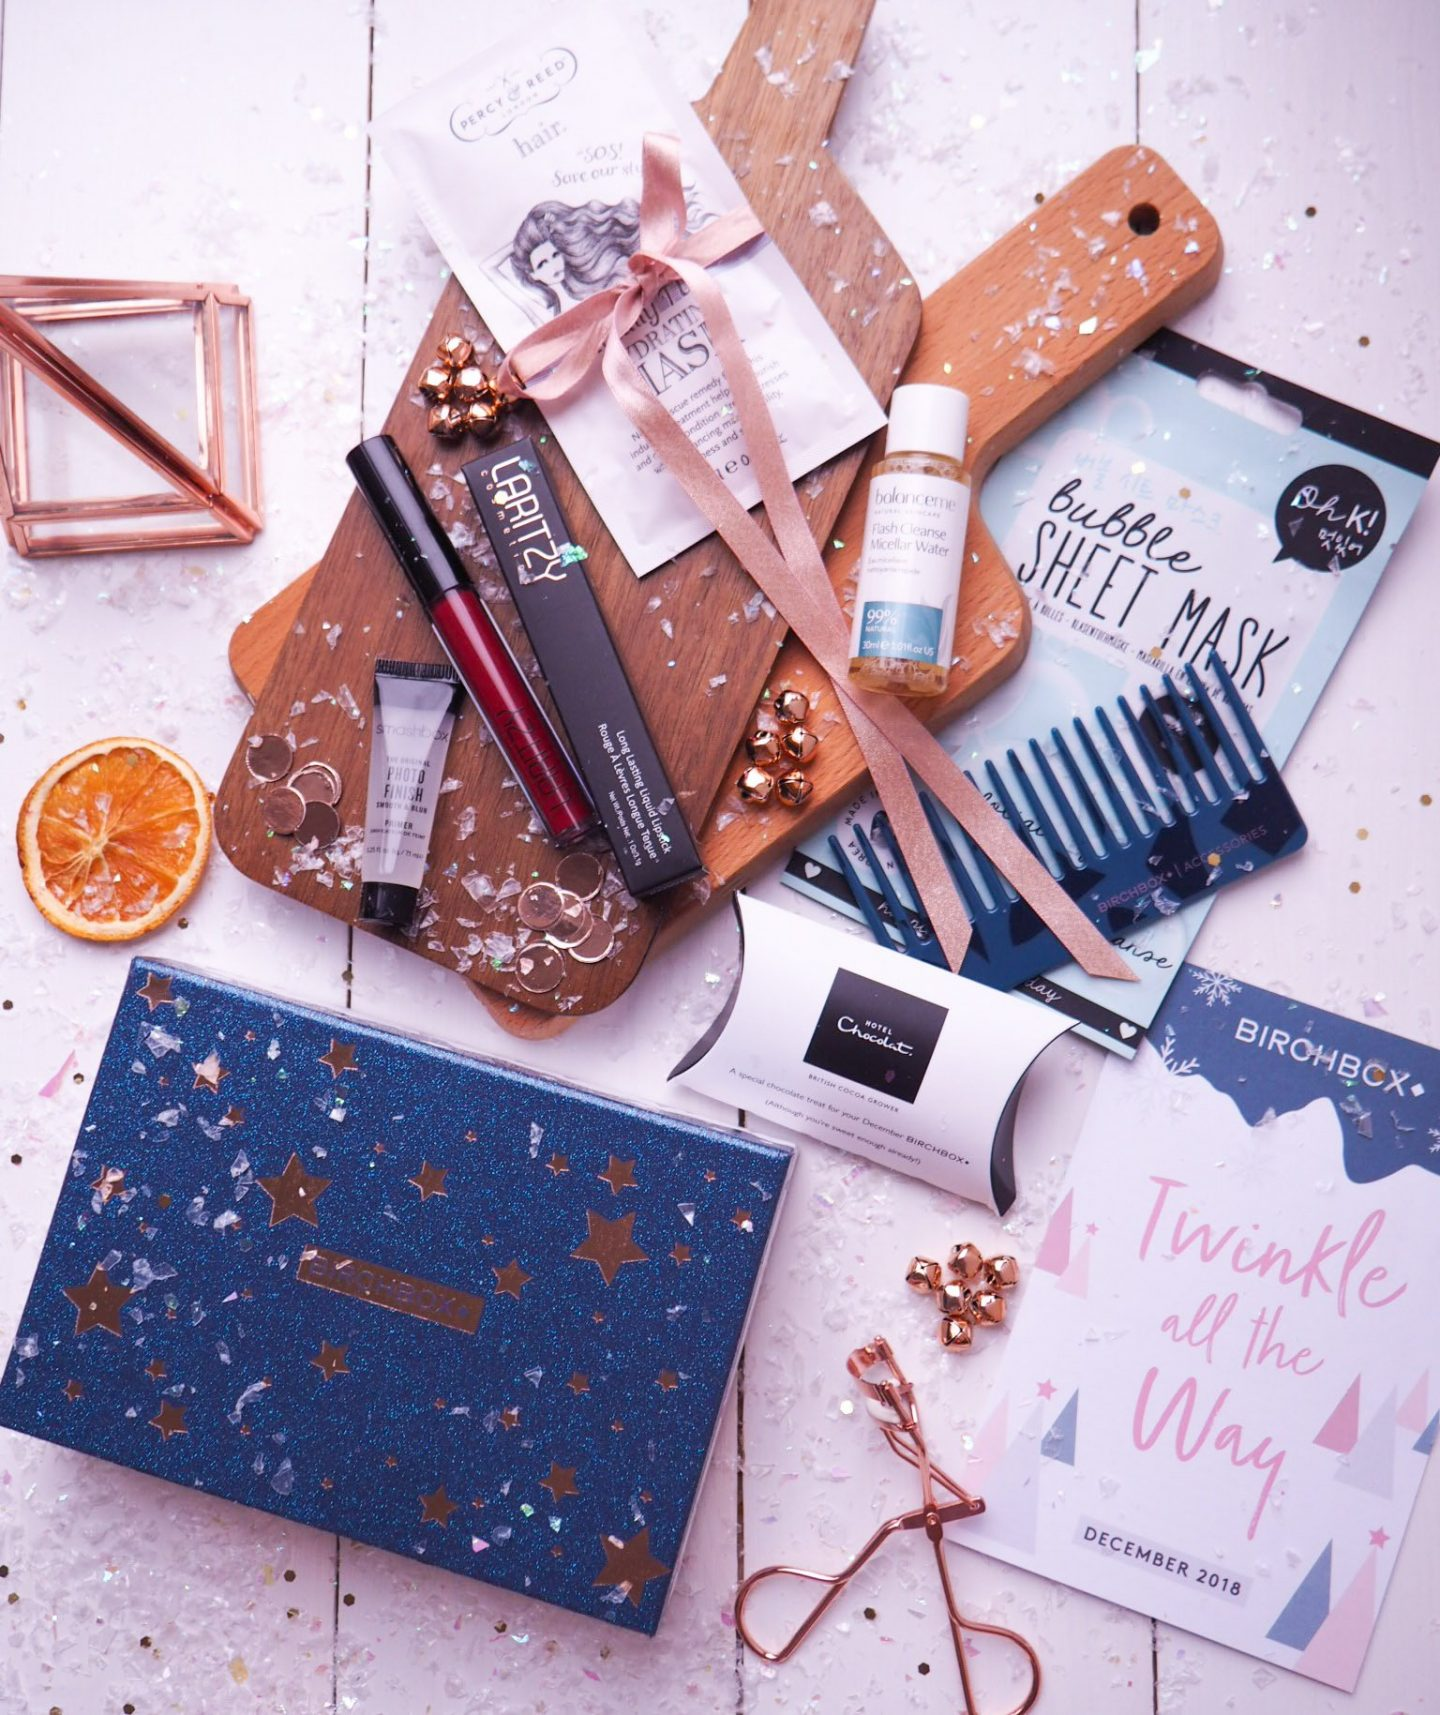 Birchbox December Ready to Twinkle All The Way